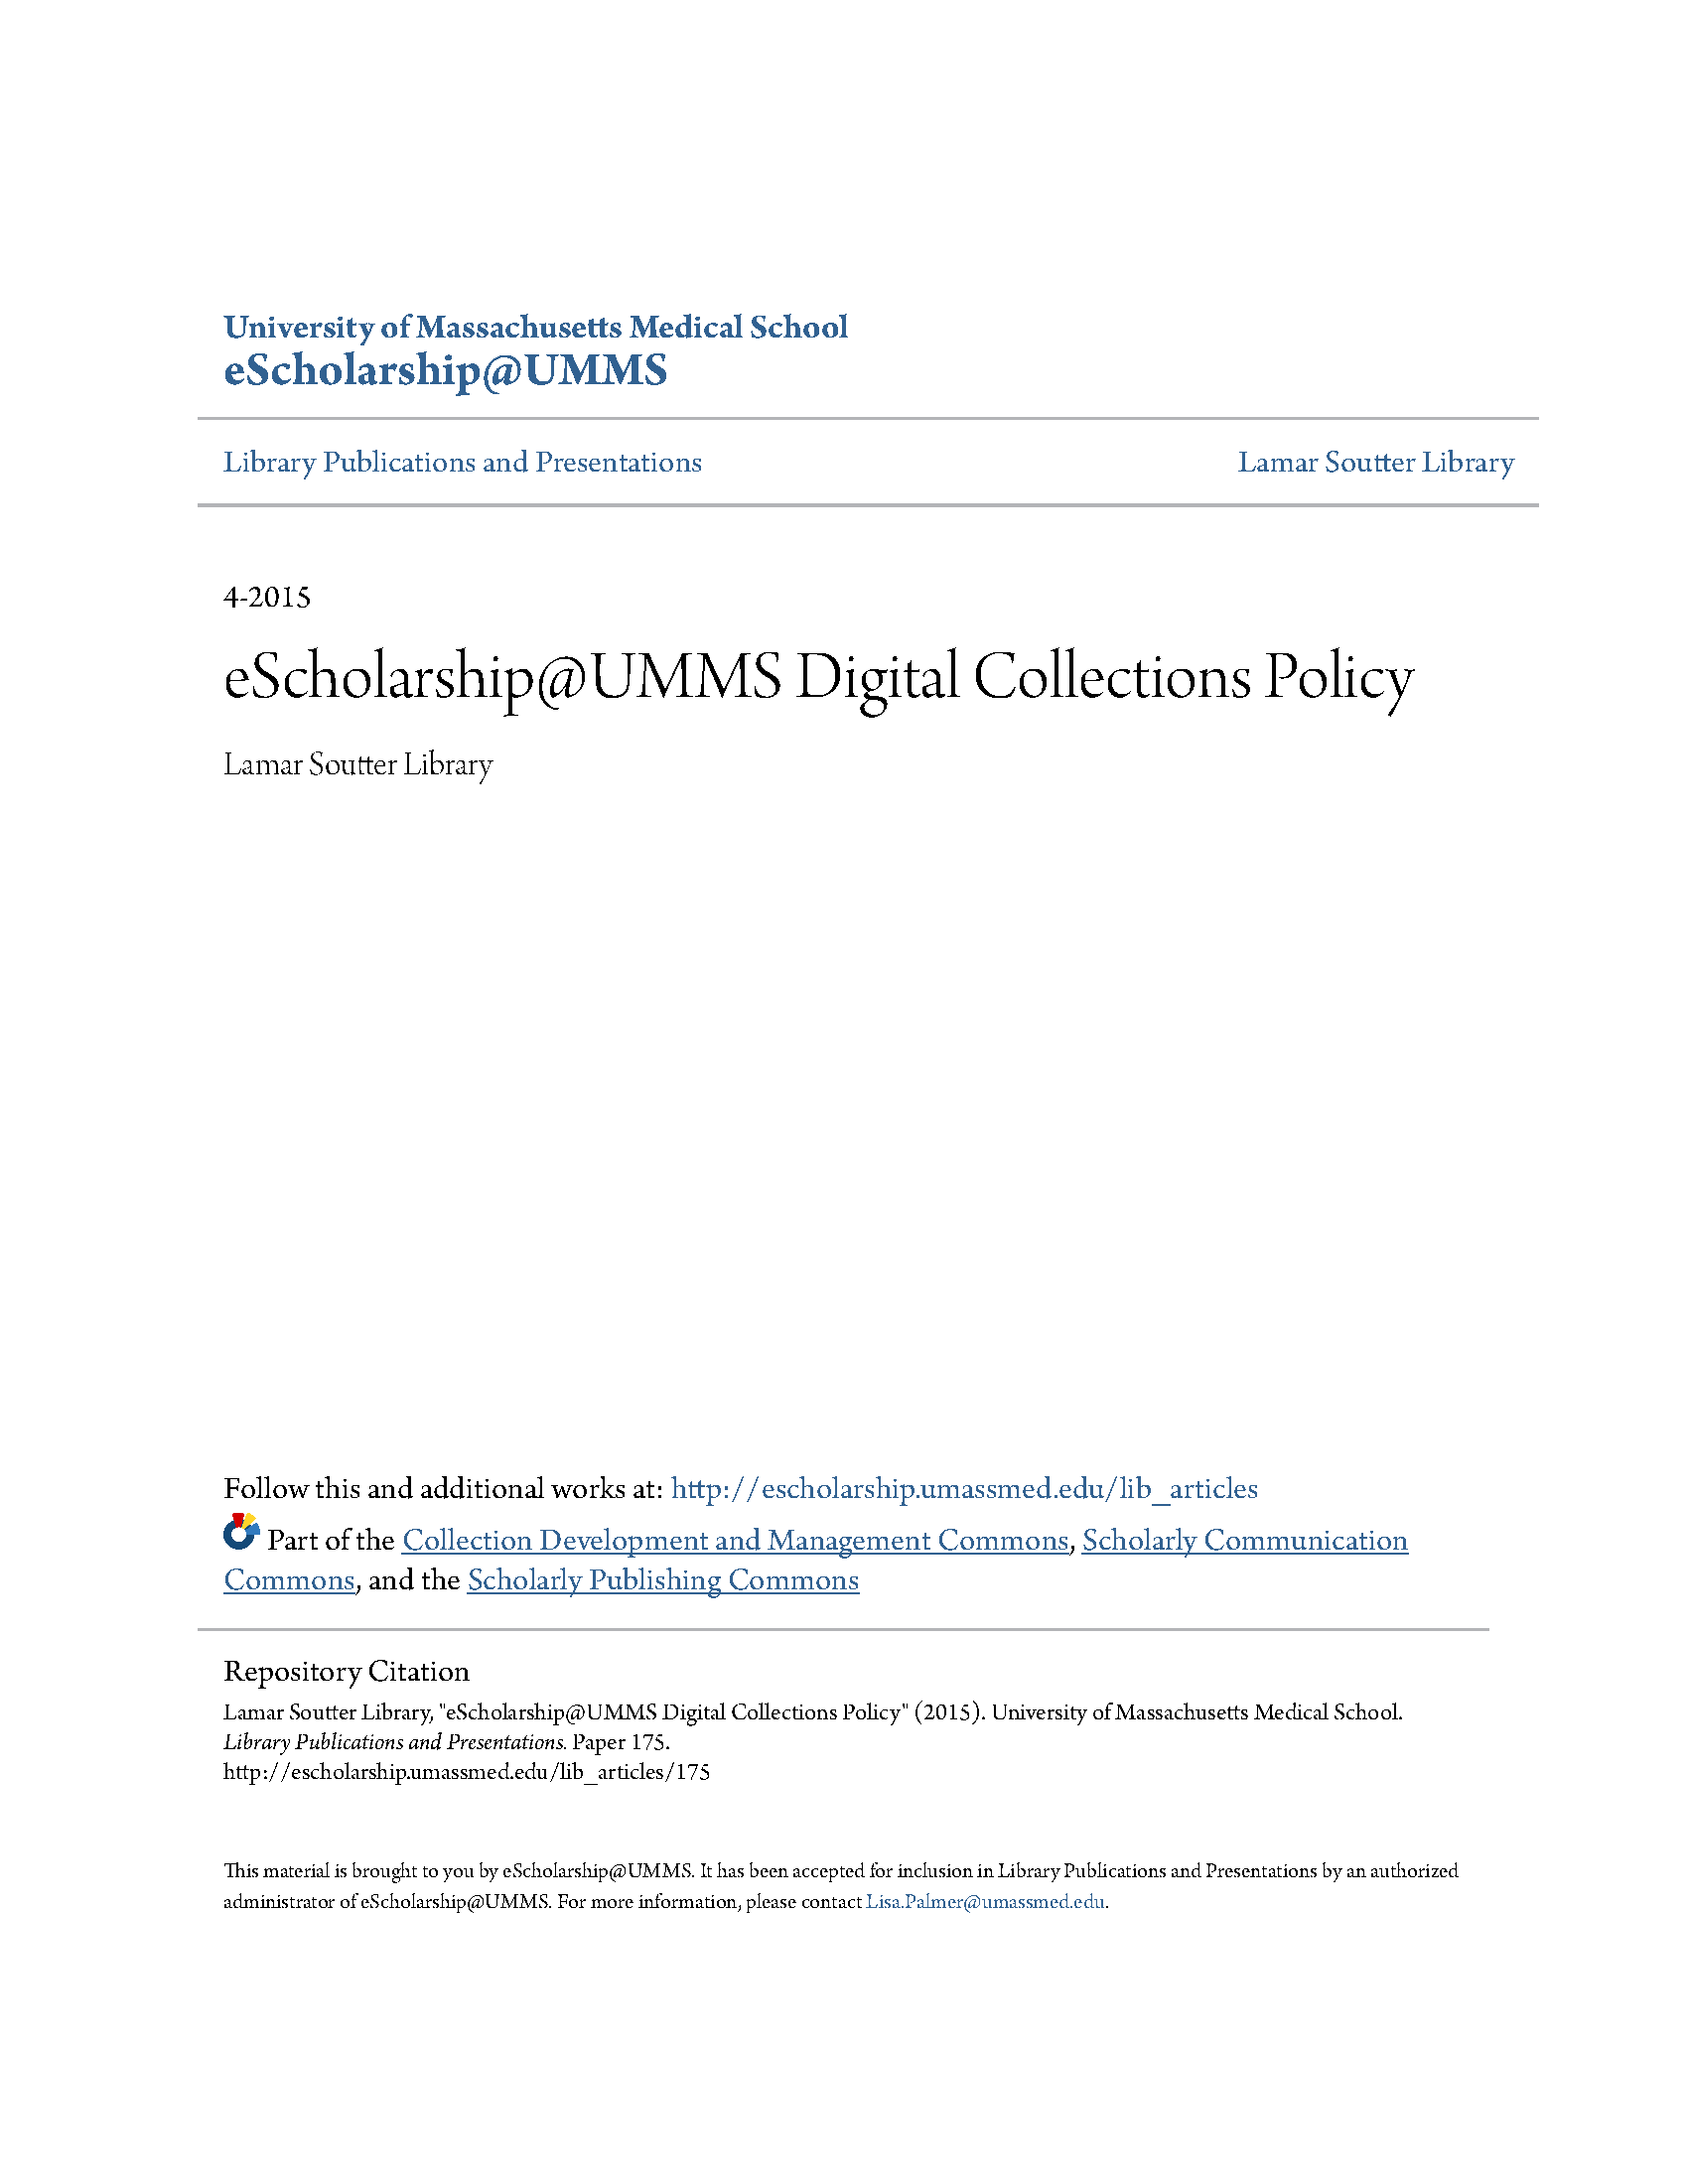 eScholarship@UMMS Digital Collections Policy